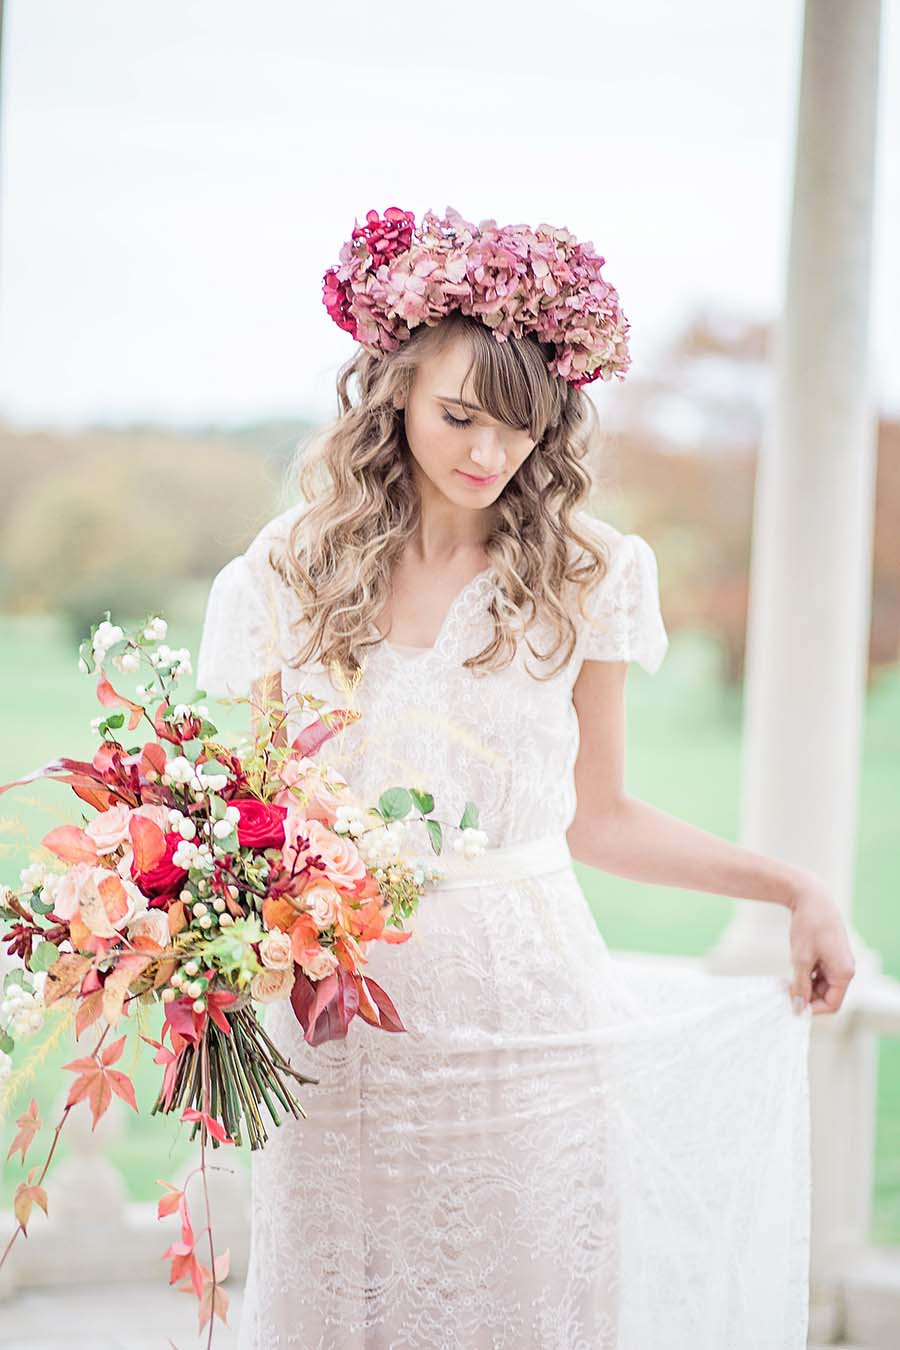 An Autumn Romance: Soft Rose & Autumnal Hues Wedding Inspiration